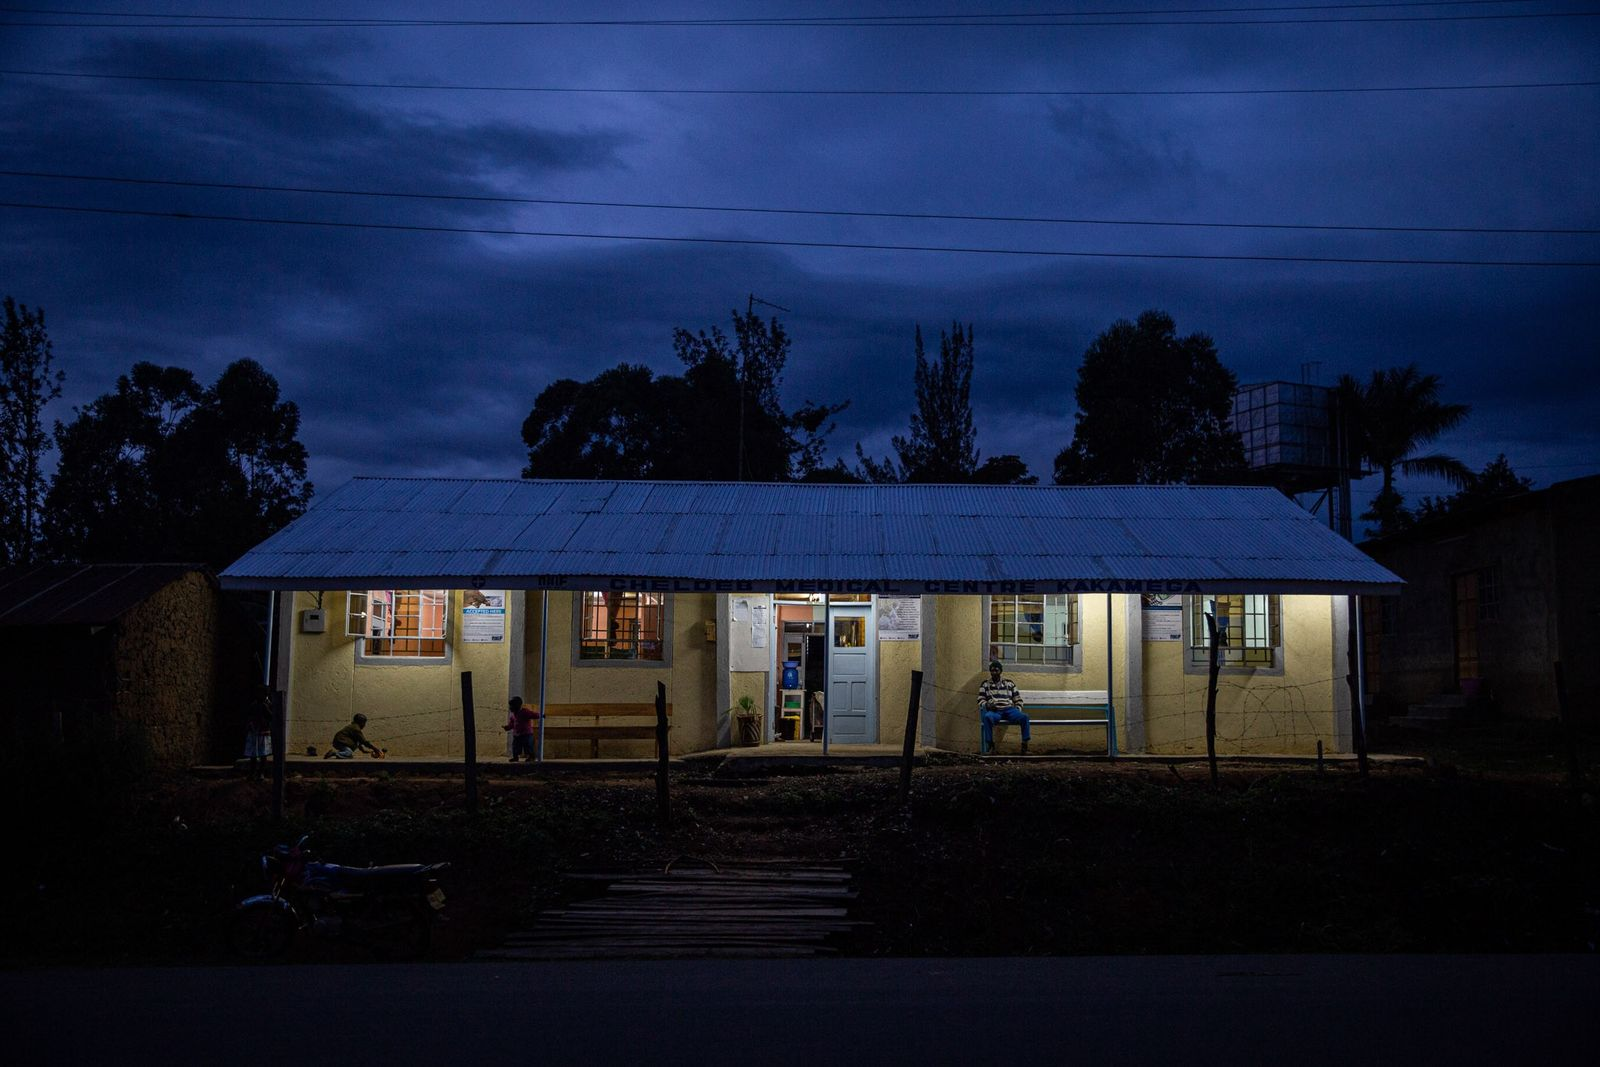 Private clinics like Cheldeb Medical Center in Kakamega, Kenya account for the majority of anti-malaria treatment ...